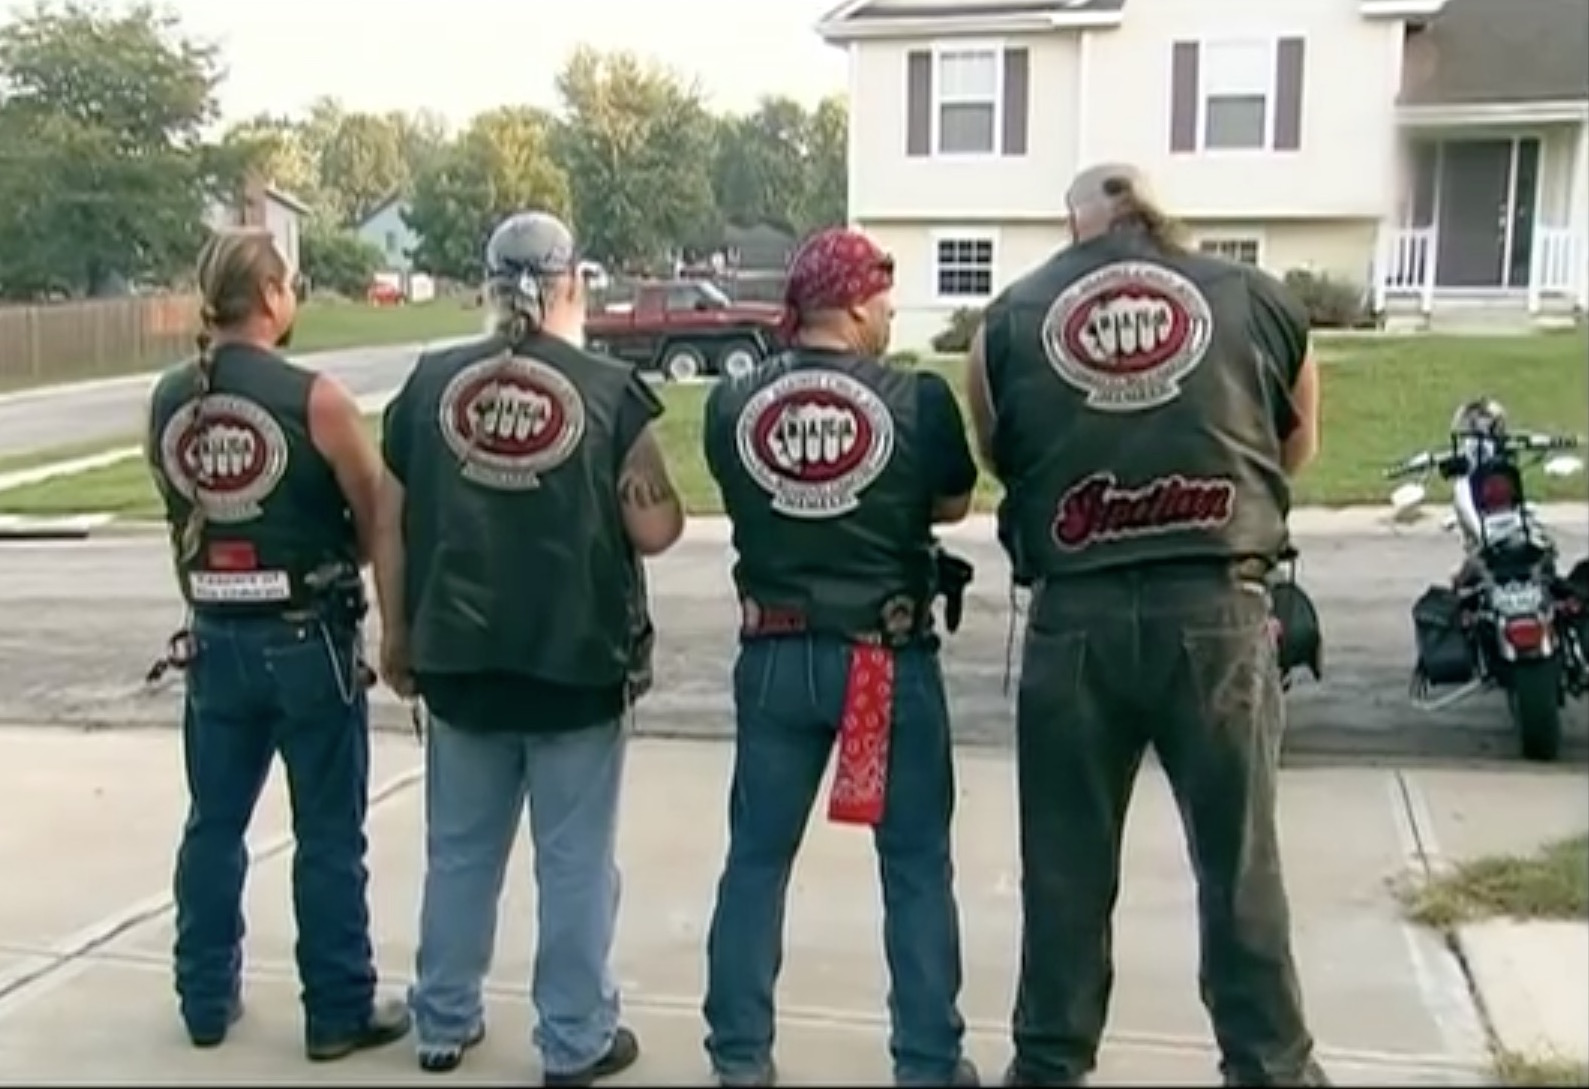 This Group of Bikers Is Trying to Stop Child Abuse